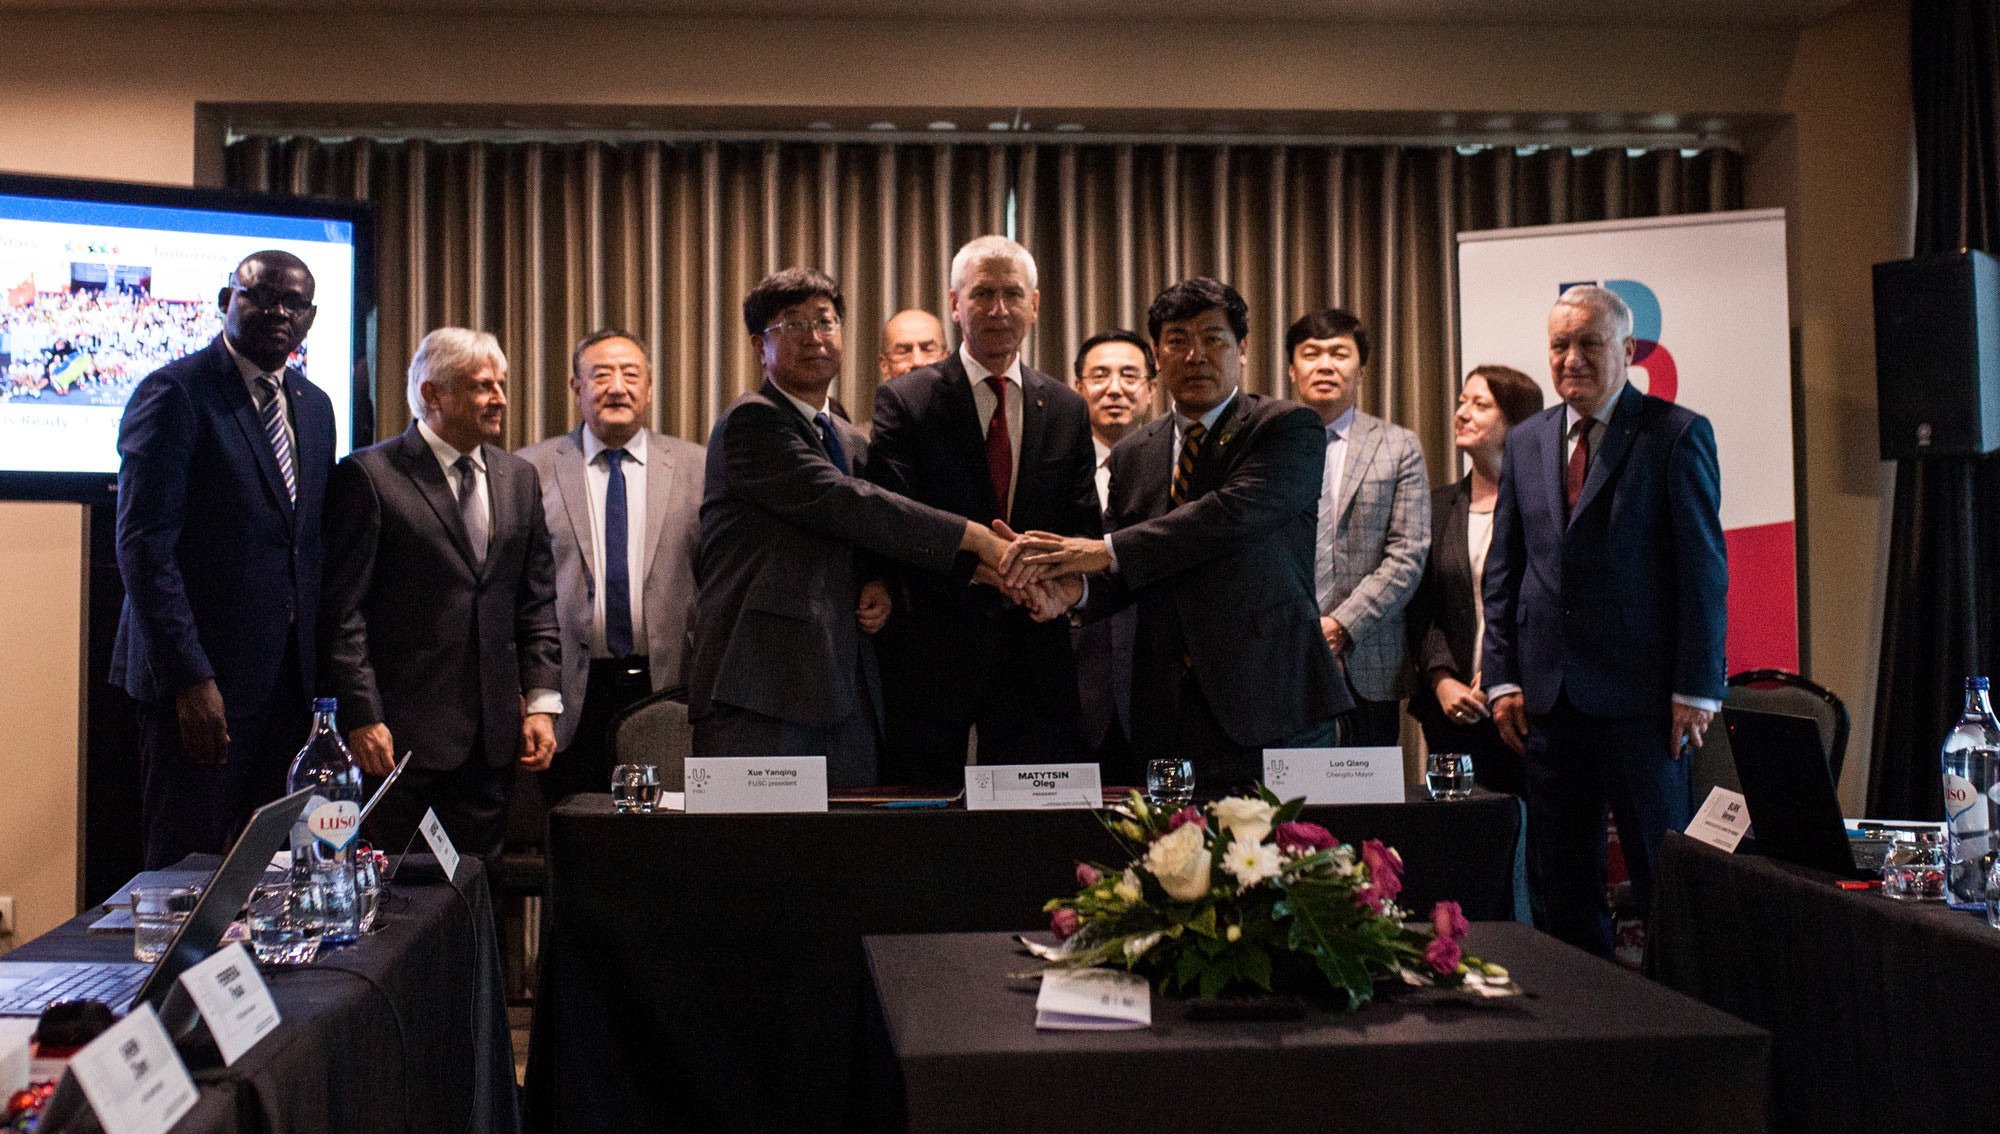 A deal has been agreed between FISU and Chengdu in China to host the 2021 Summer Universiade @FISU